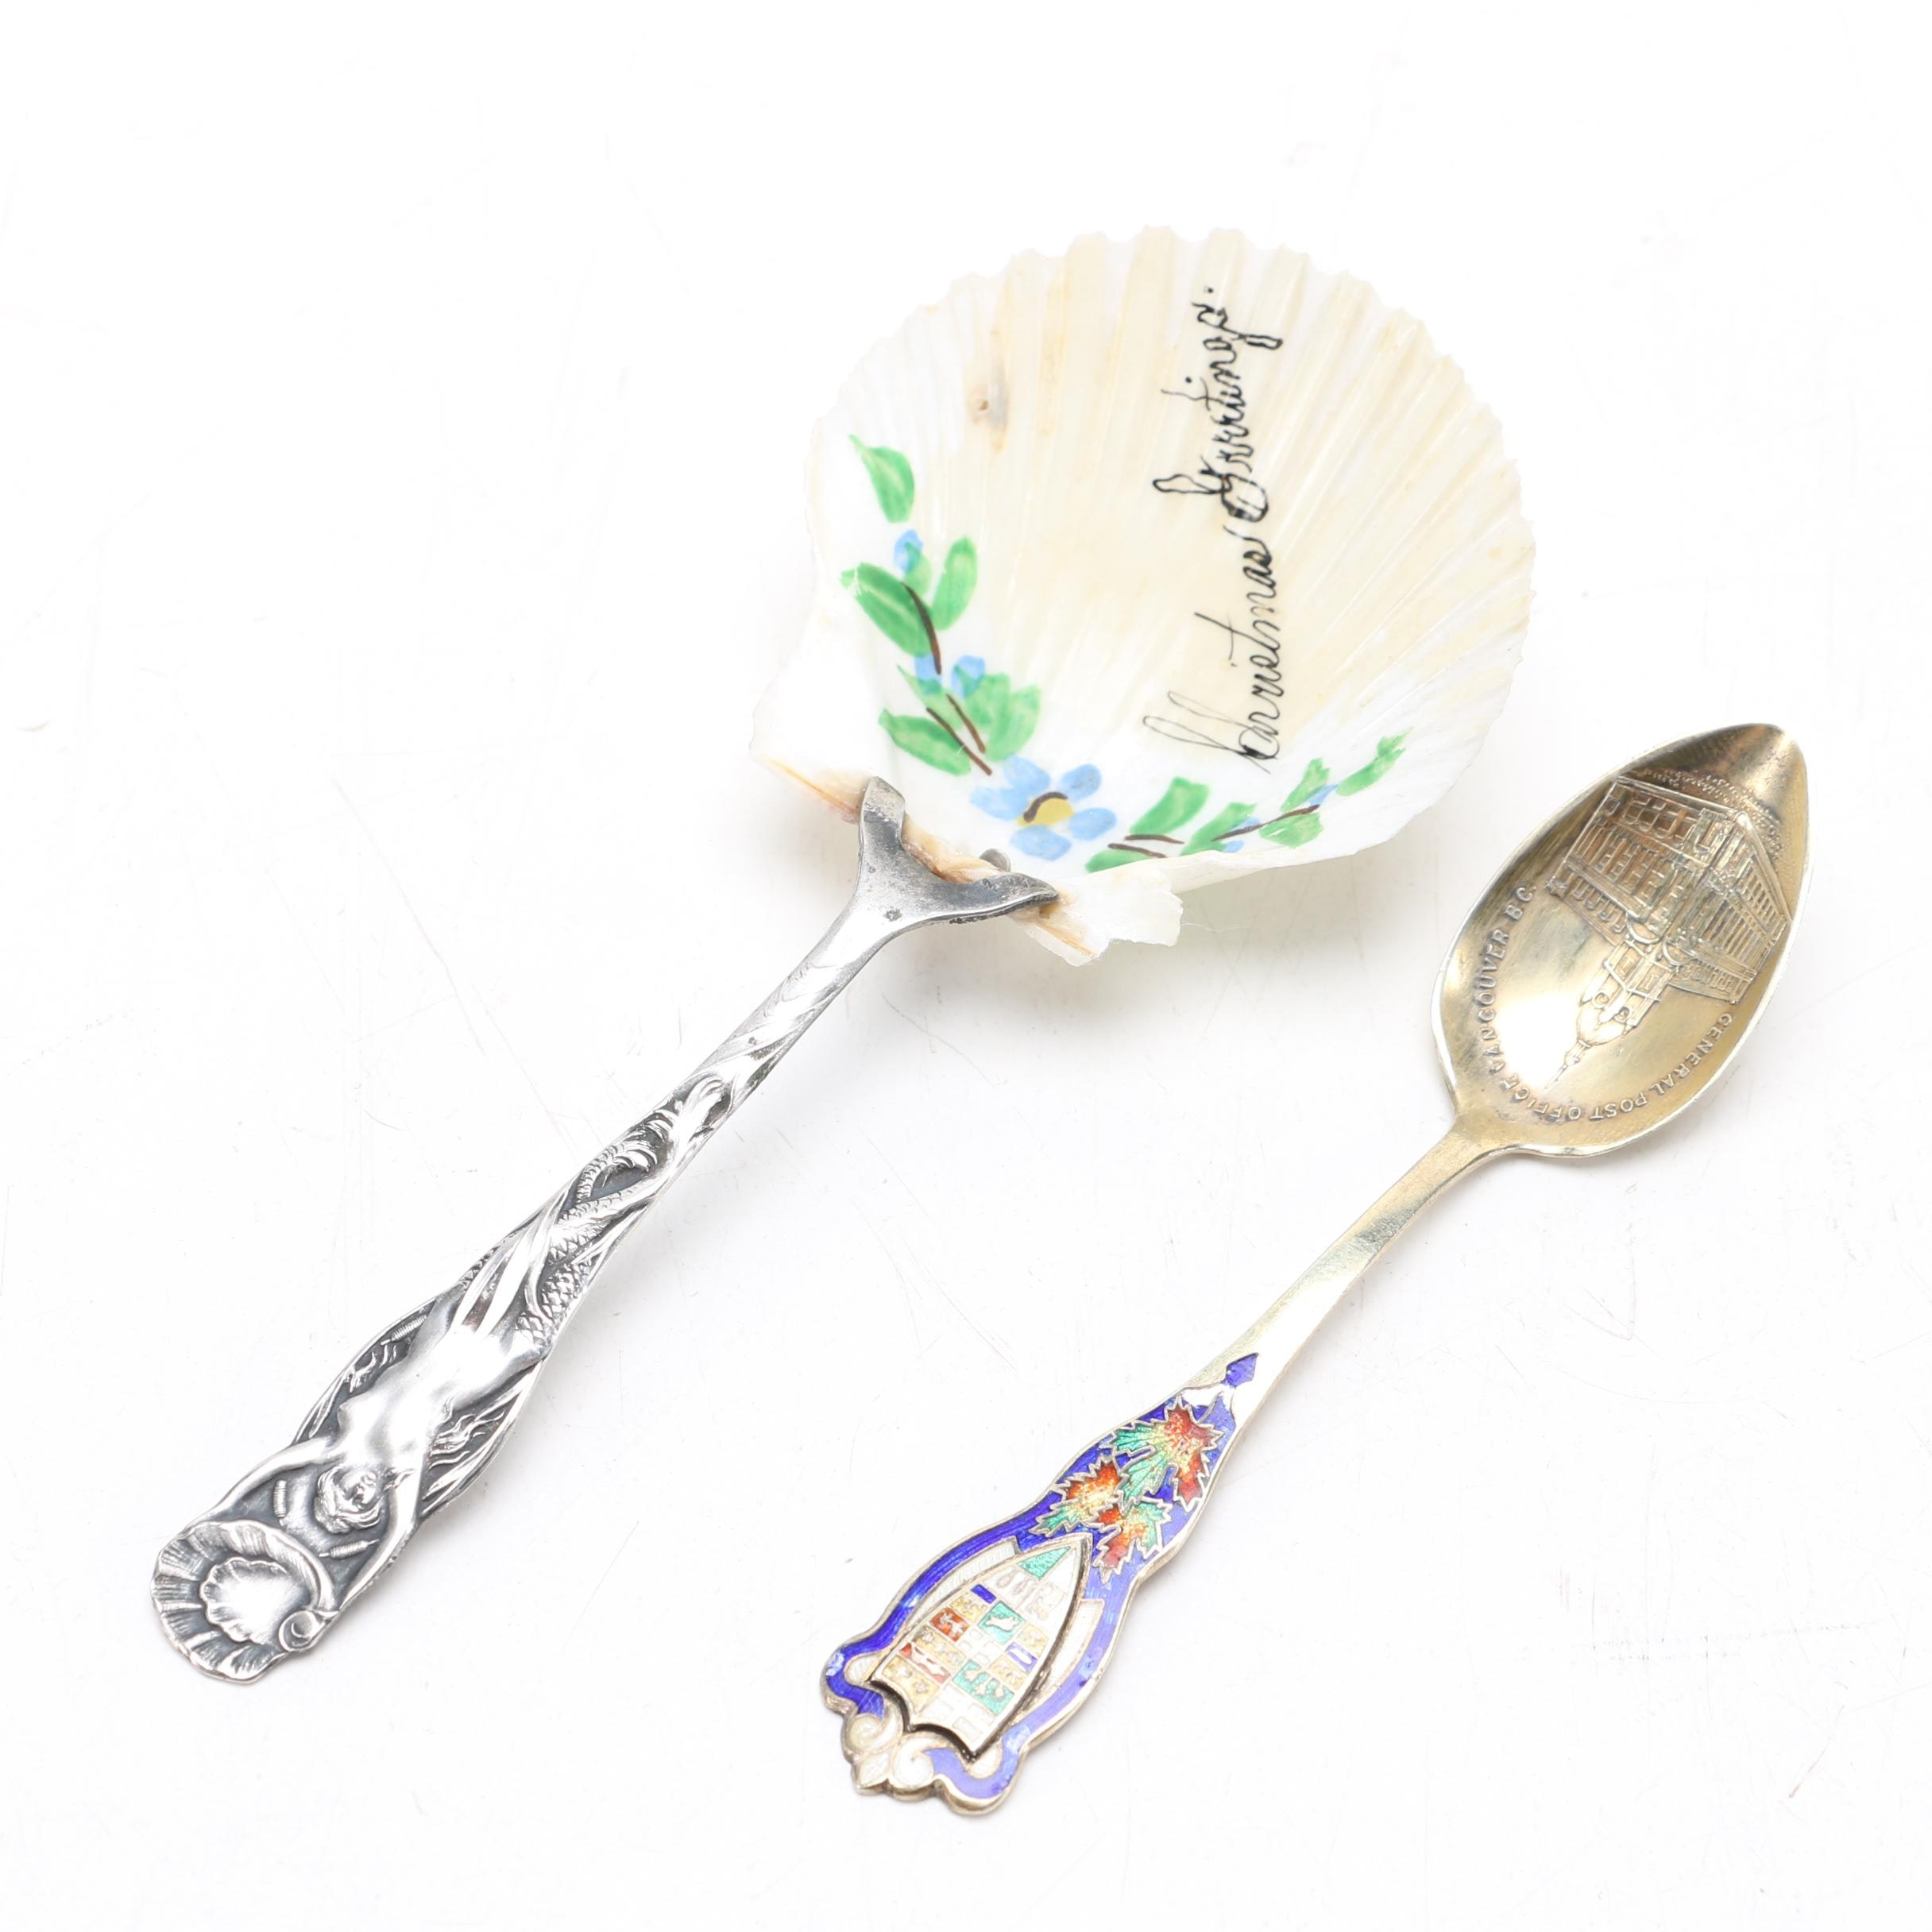 Sterling and Silver Plate Spoons Featuring U.S. Sterling Co.